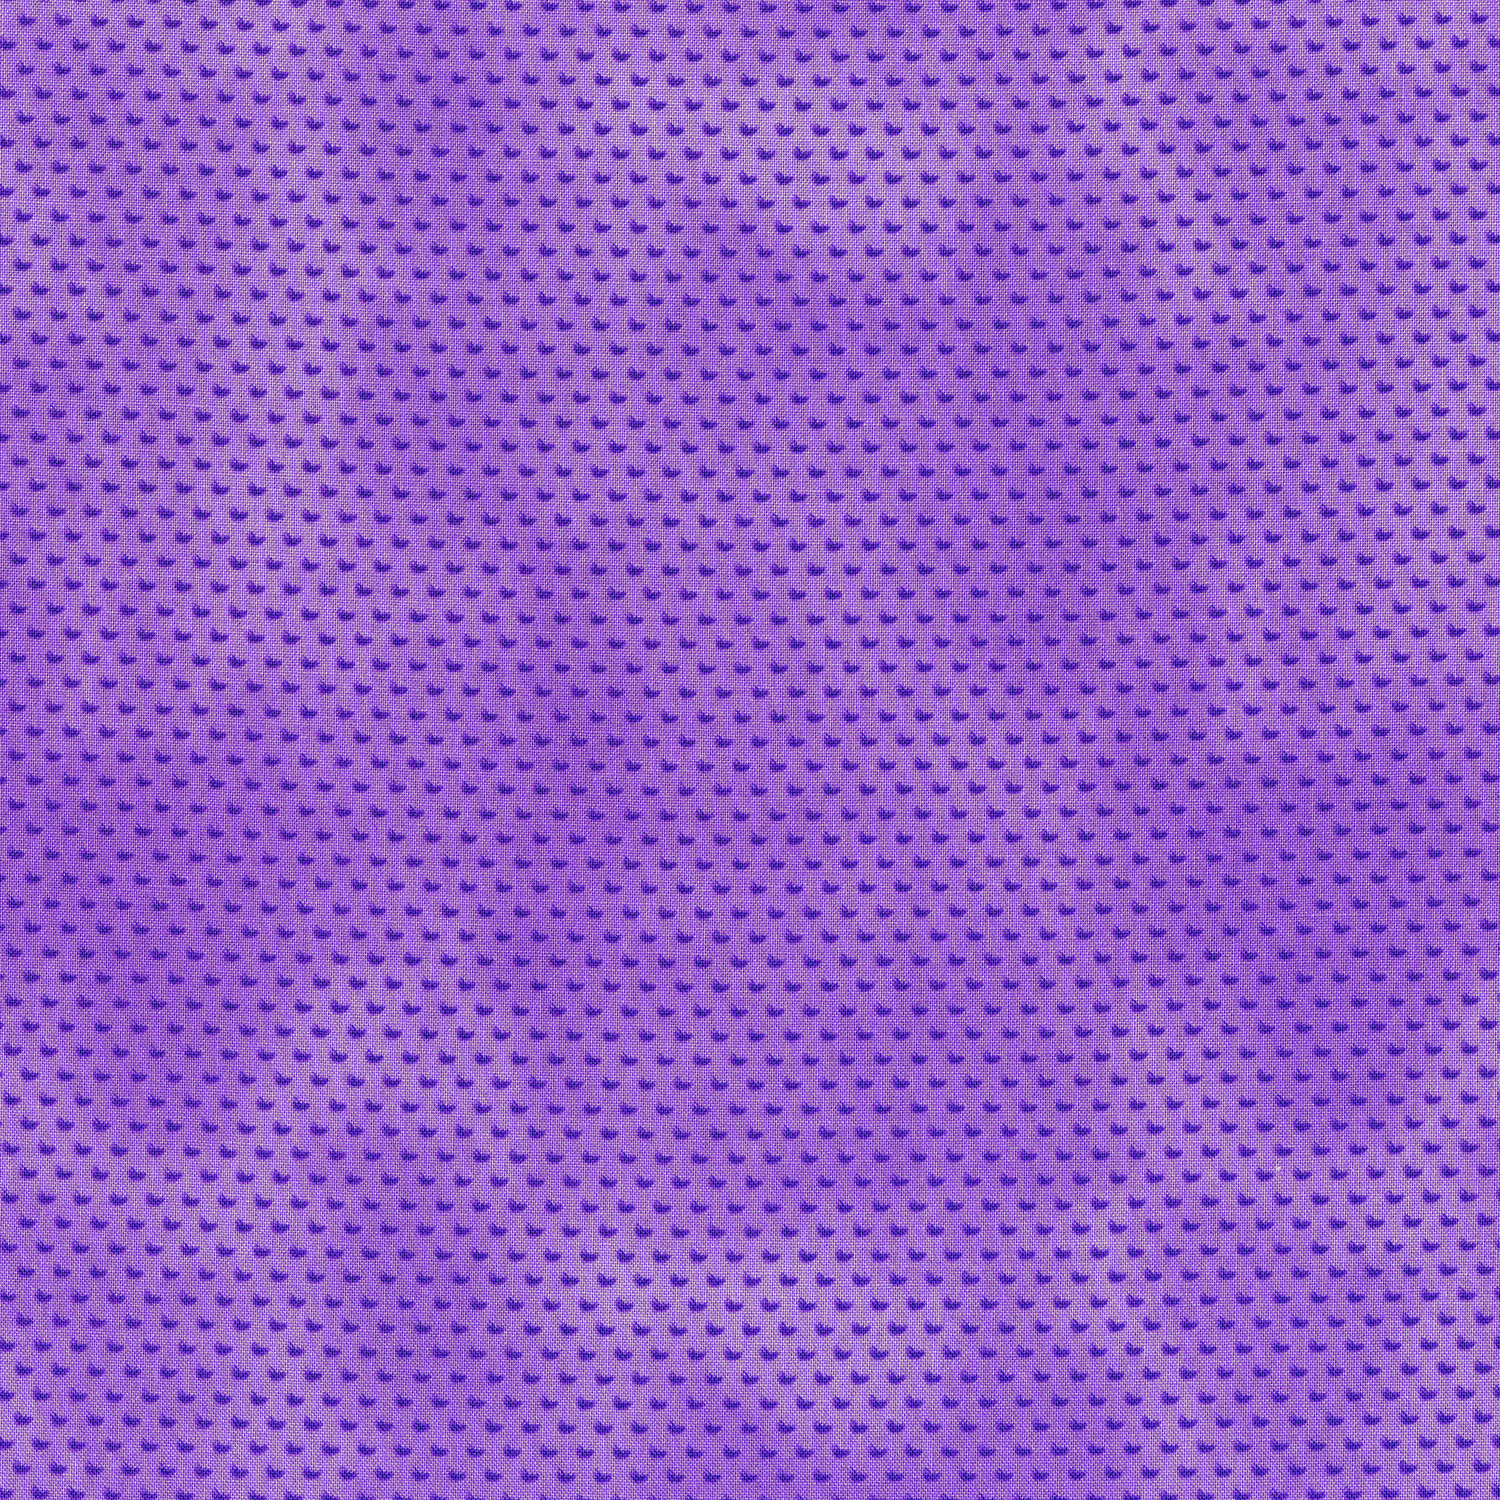 3301-001 SPROUT-AMETHYST